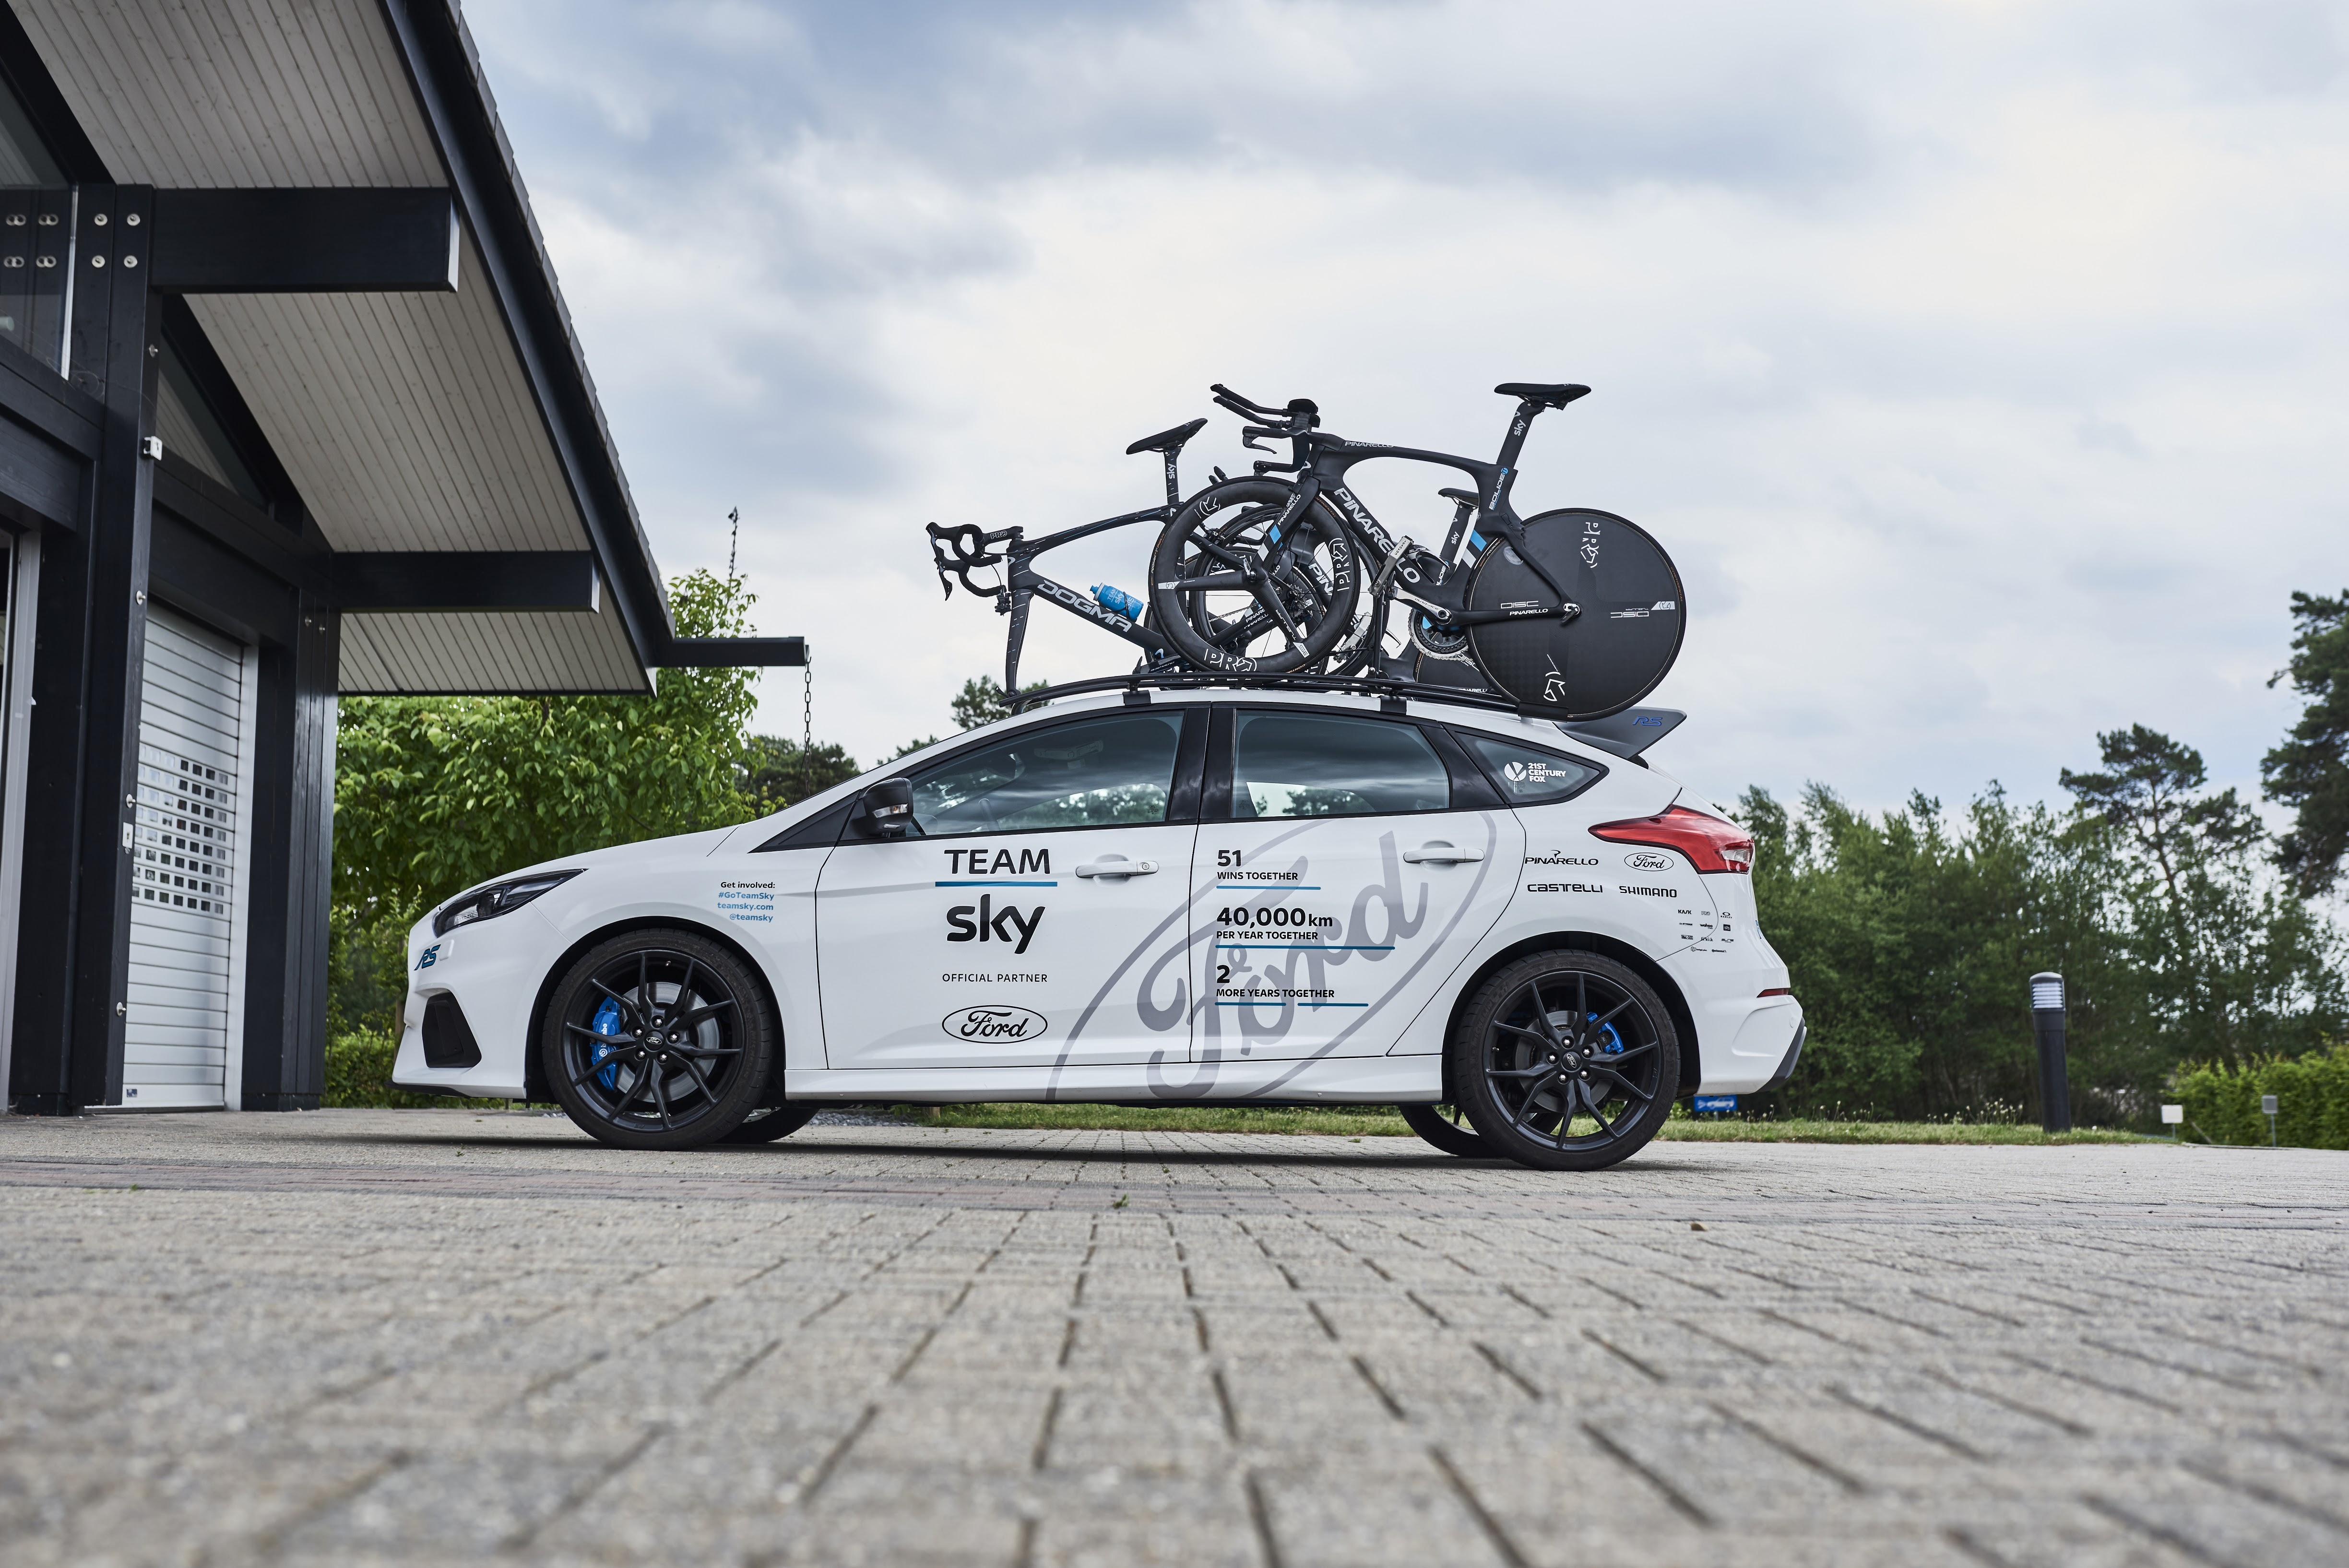 ford develop special version of focus rs for the 2017 tour de france the bike comes first. Black Bedroom Furniture Sets. Home Design Ideas